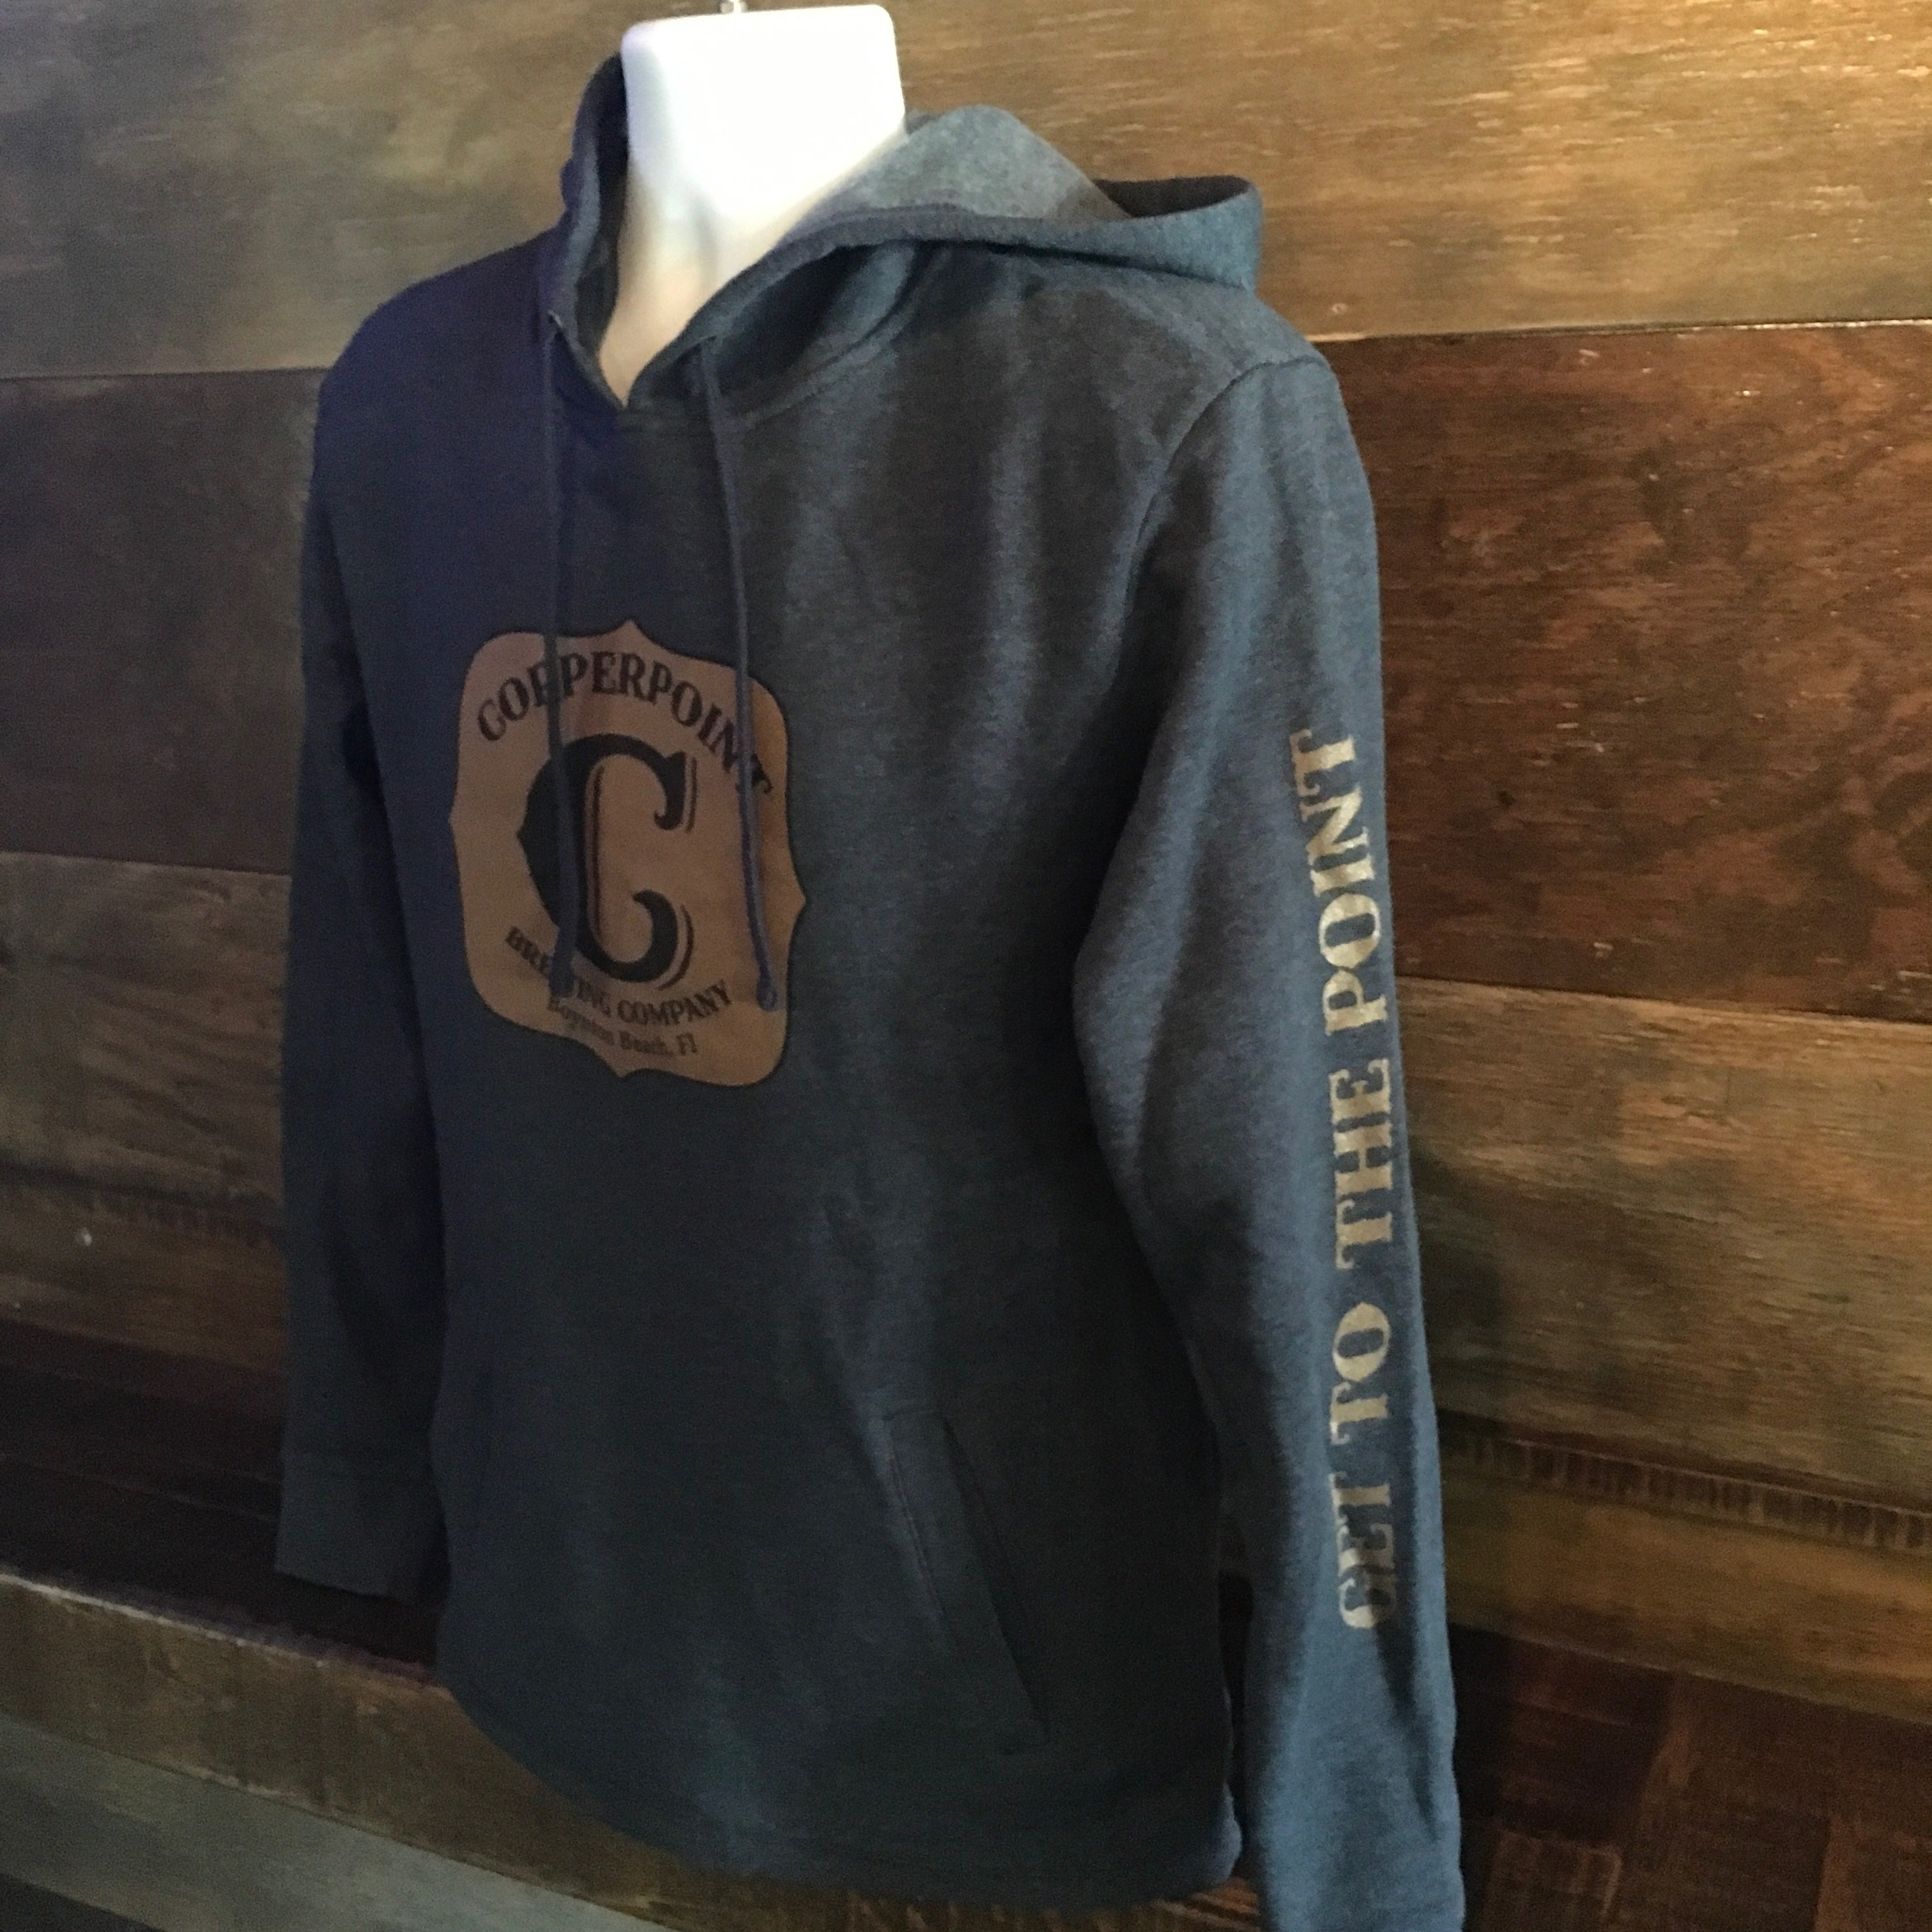 Copperpoint Hoodie (pullover) 00008